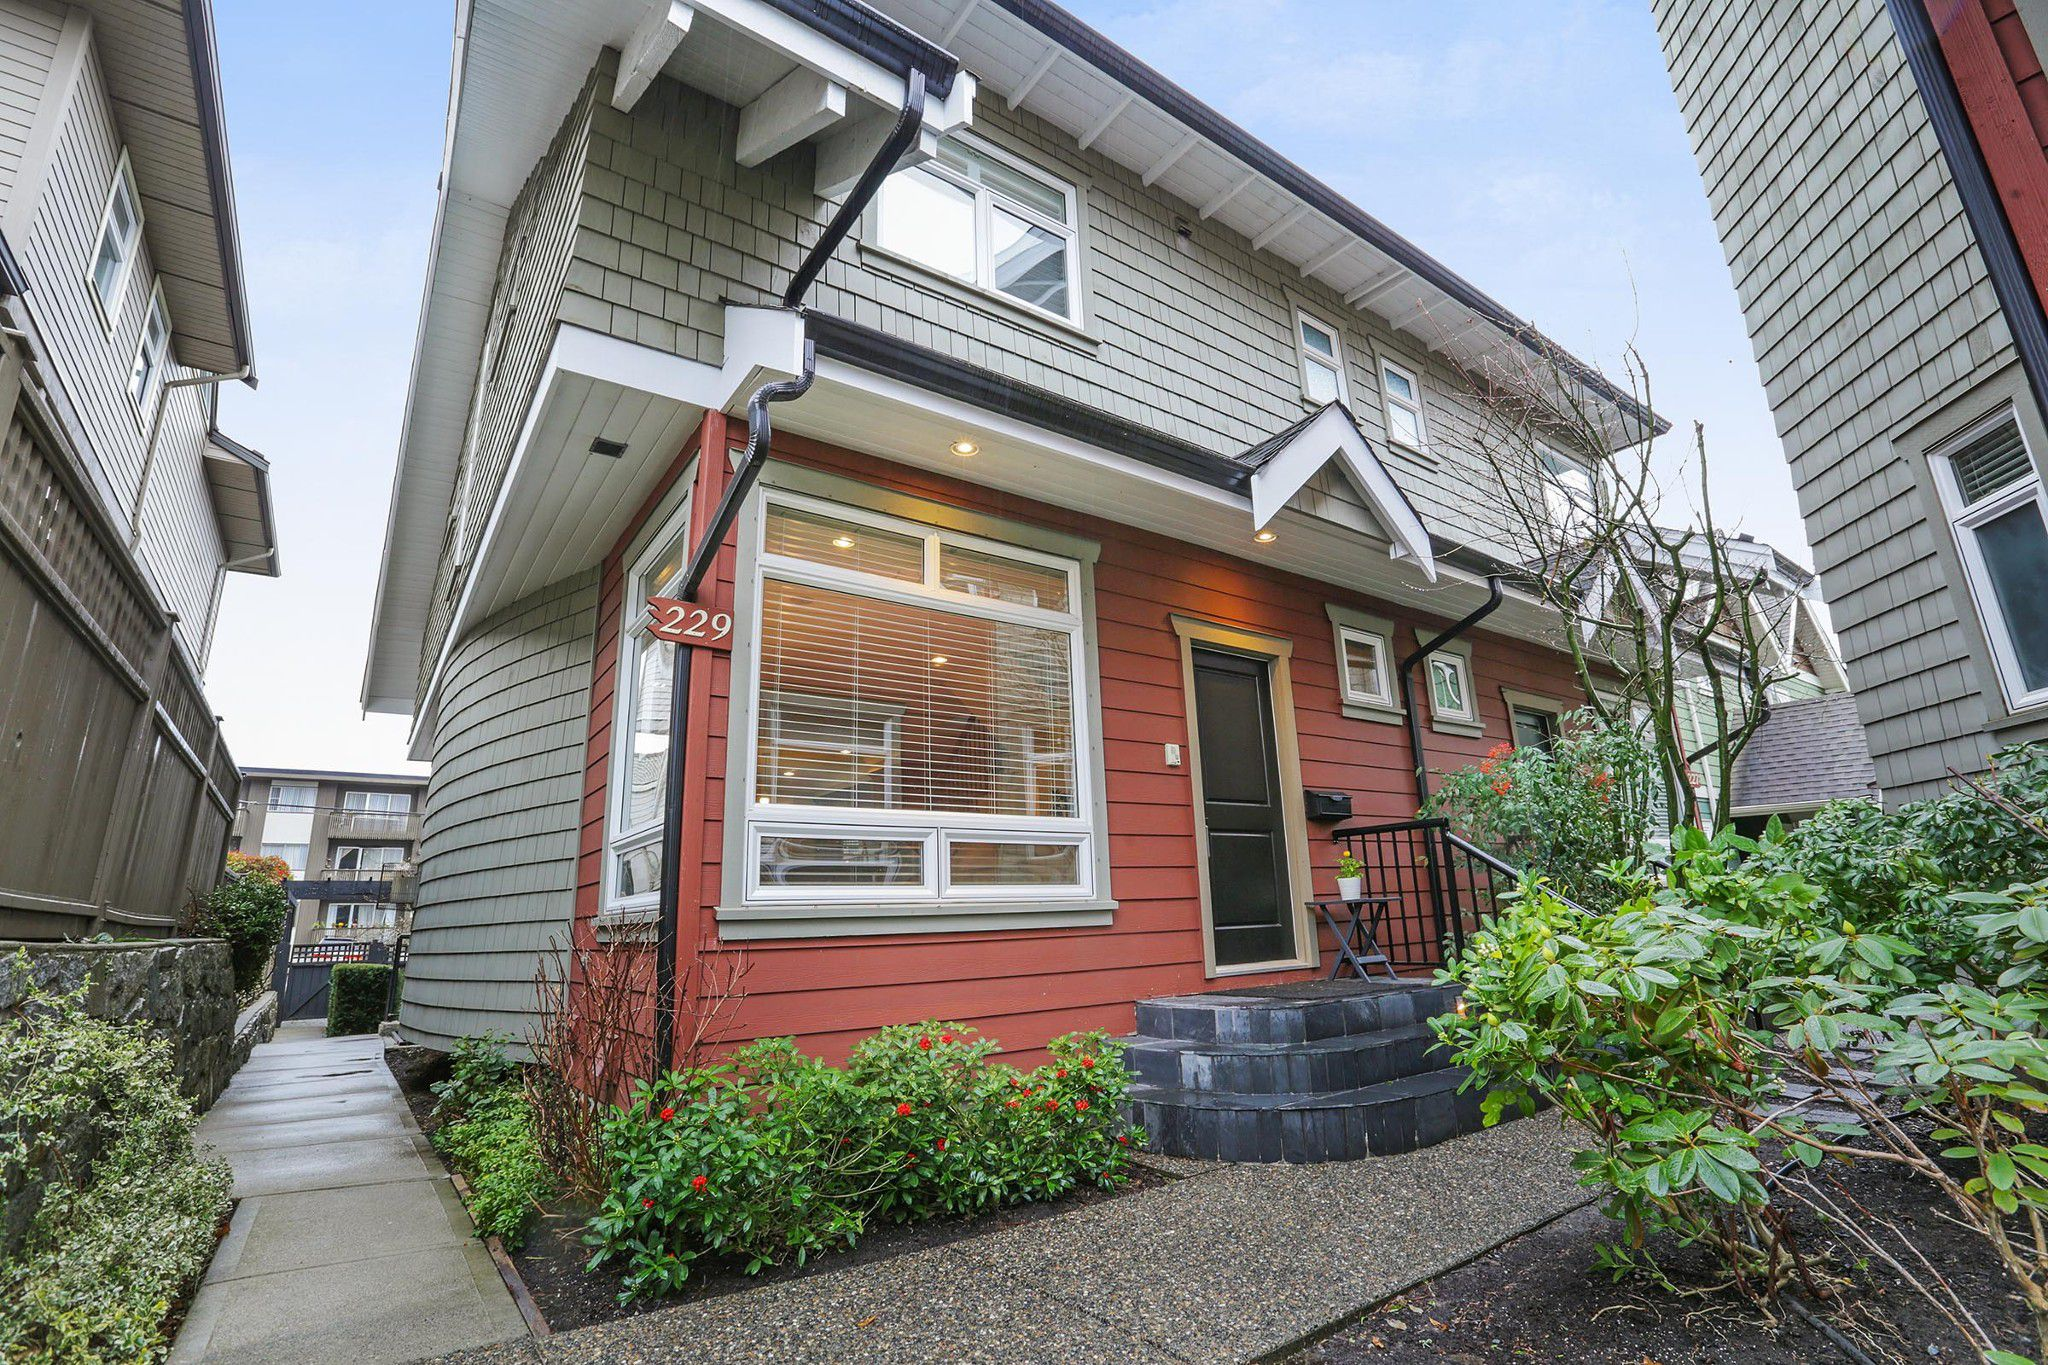 Main Photo: 229 E 17TH Street in North Vancouver: Central Lonsdale House 1/2 Duplex for sale : MLS®# R2252507